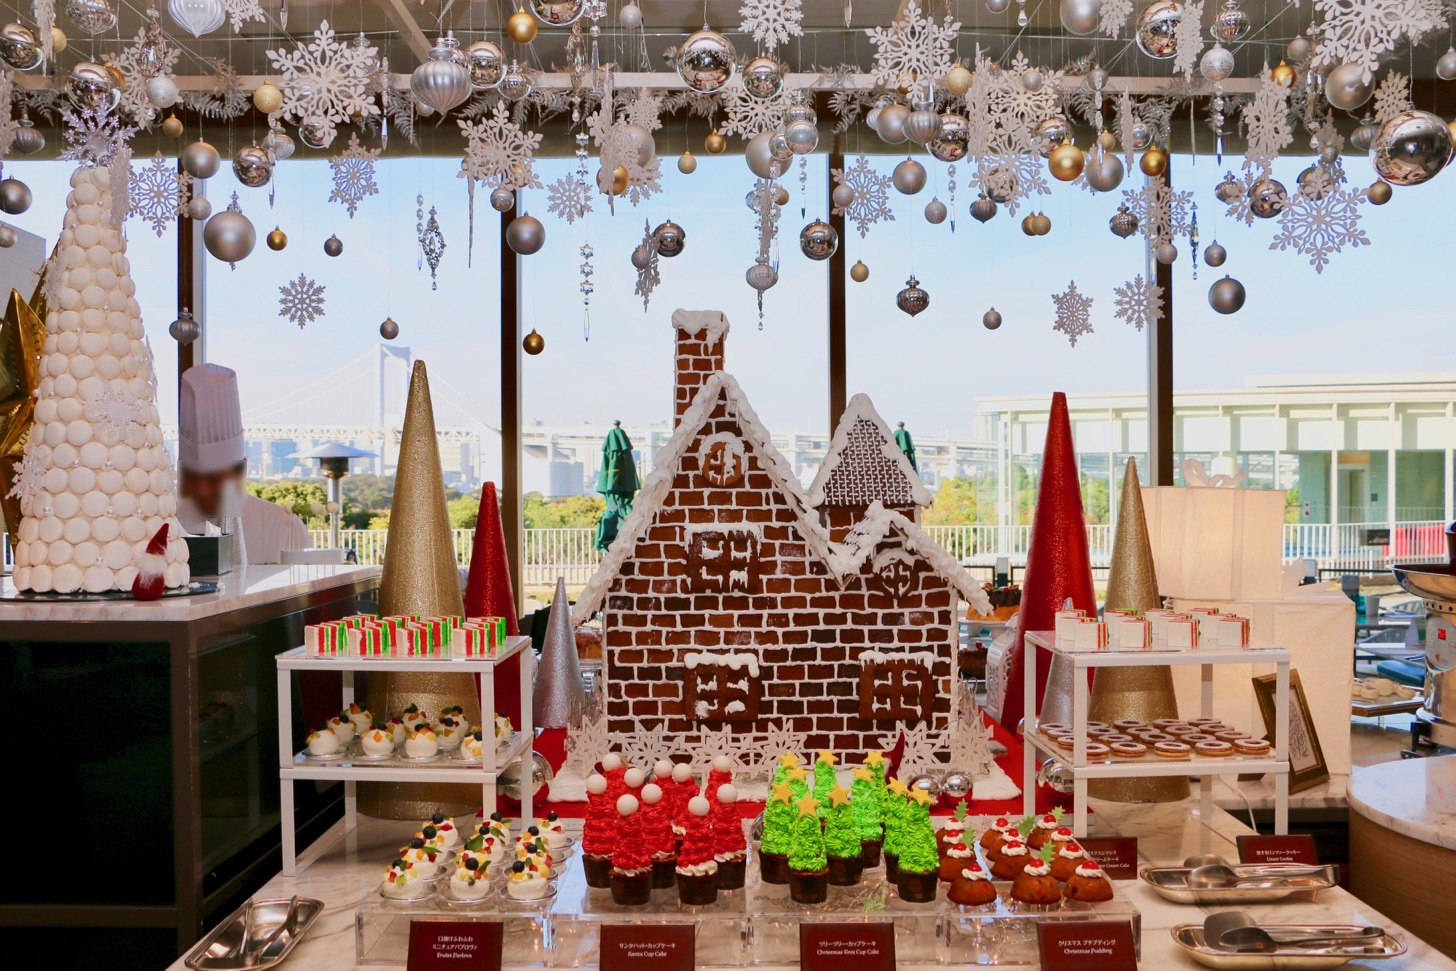 [Hilton Tokyo Odaiba] The world's sweets buffet for miniatures and Christmas markets! I came to feel a Christmas feeling a little earlier # Hilton Suites